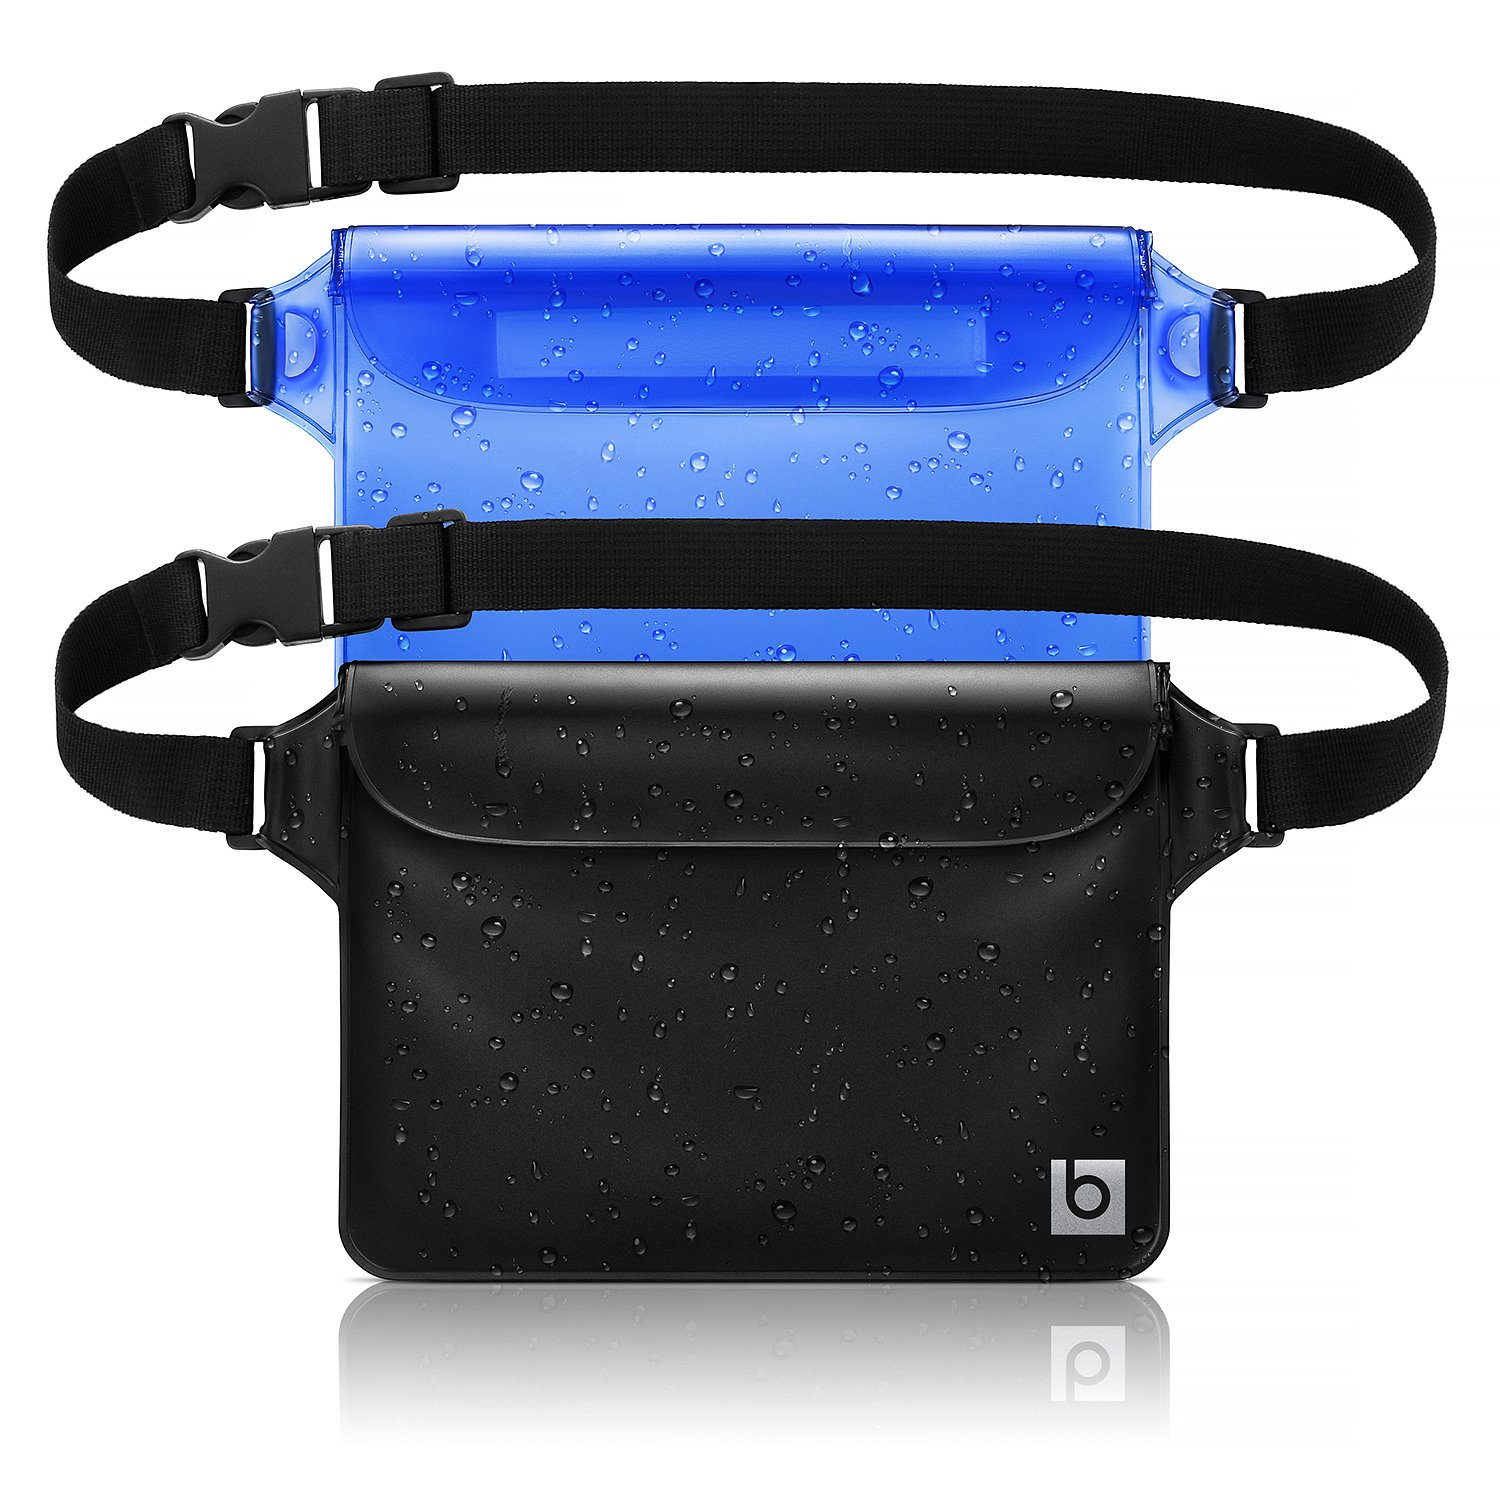 Waterproof Pouch with Waist Strap (2 Pack) | Best Way to Keep Your Phone and Valuables Safe and Dry | Perfect for Boating Swimming Snorkeling Kayaking Beach Pool Water Parks Blue Sky Basics™ Waterproof Pouch 1